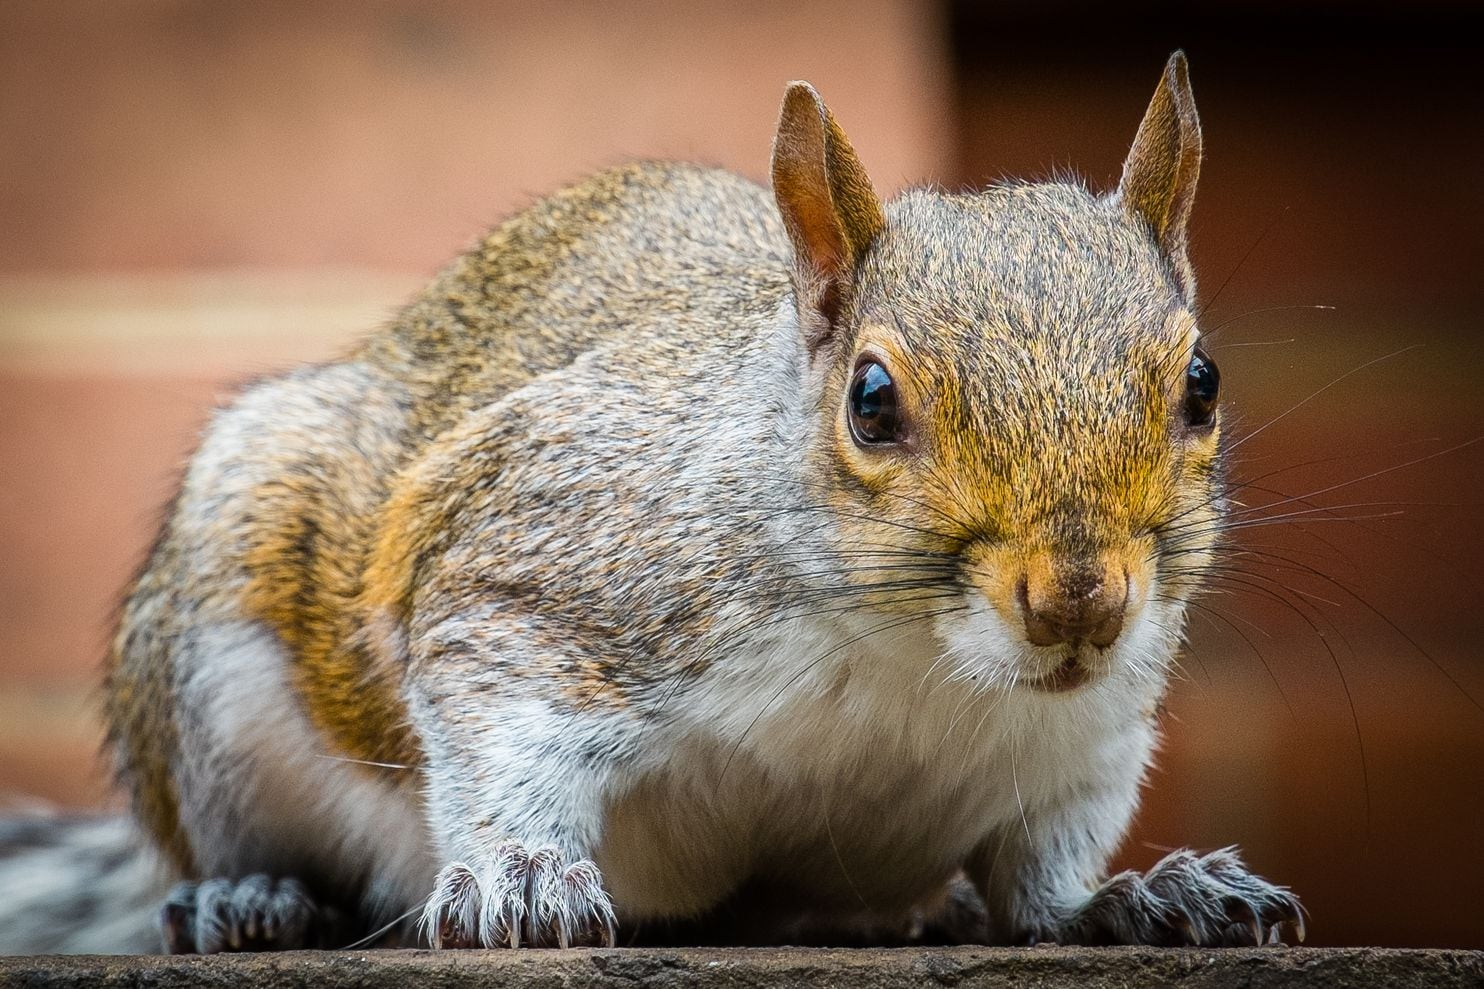 squirrels are brainy and